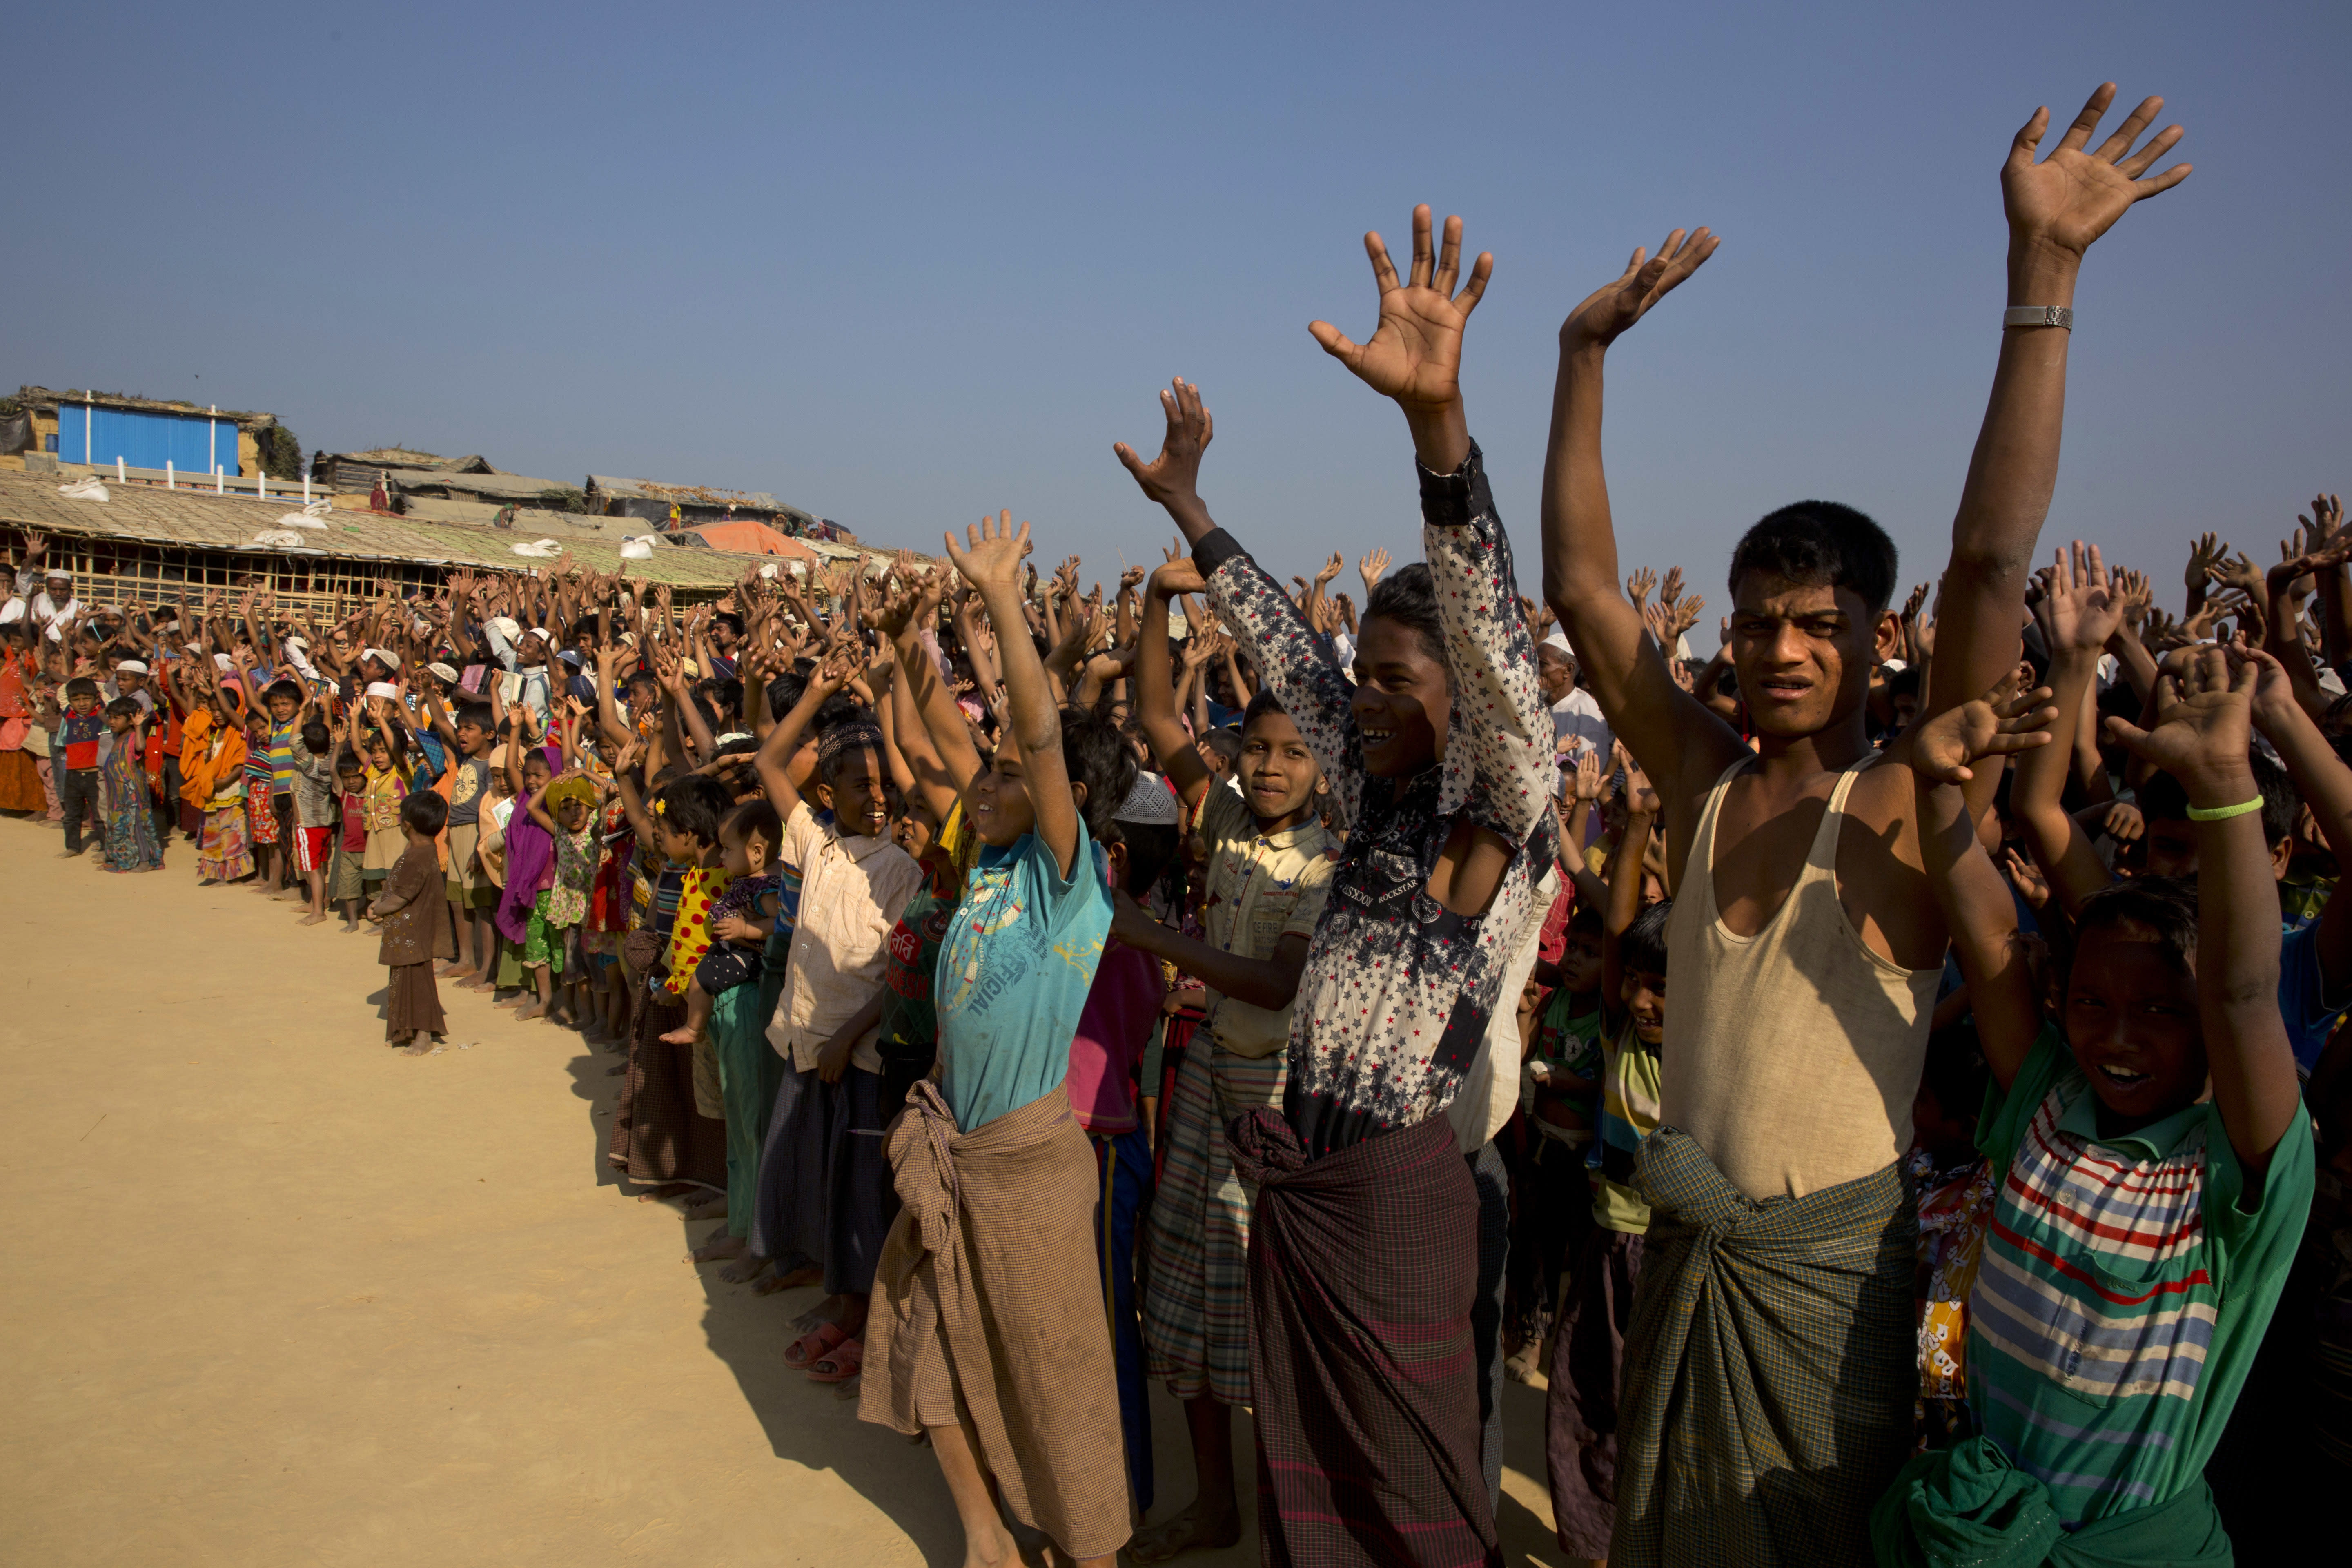 No Rohingya turn up for planned repatriation to Myanmar